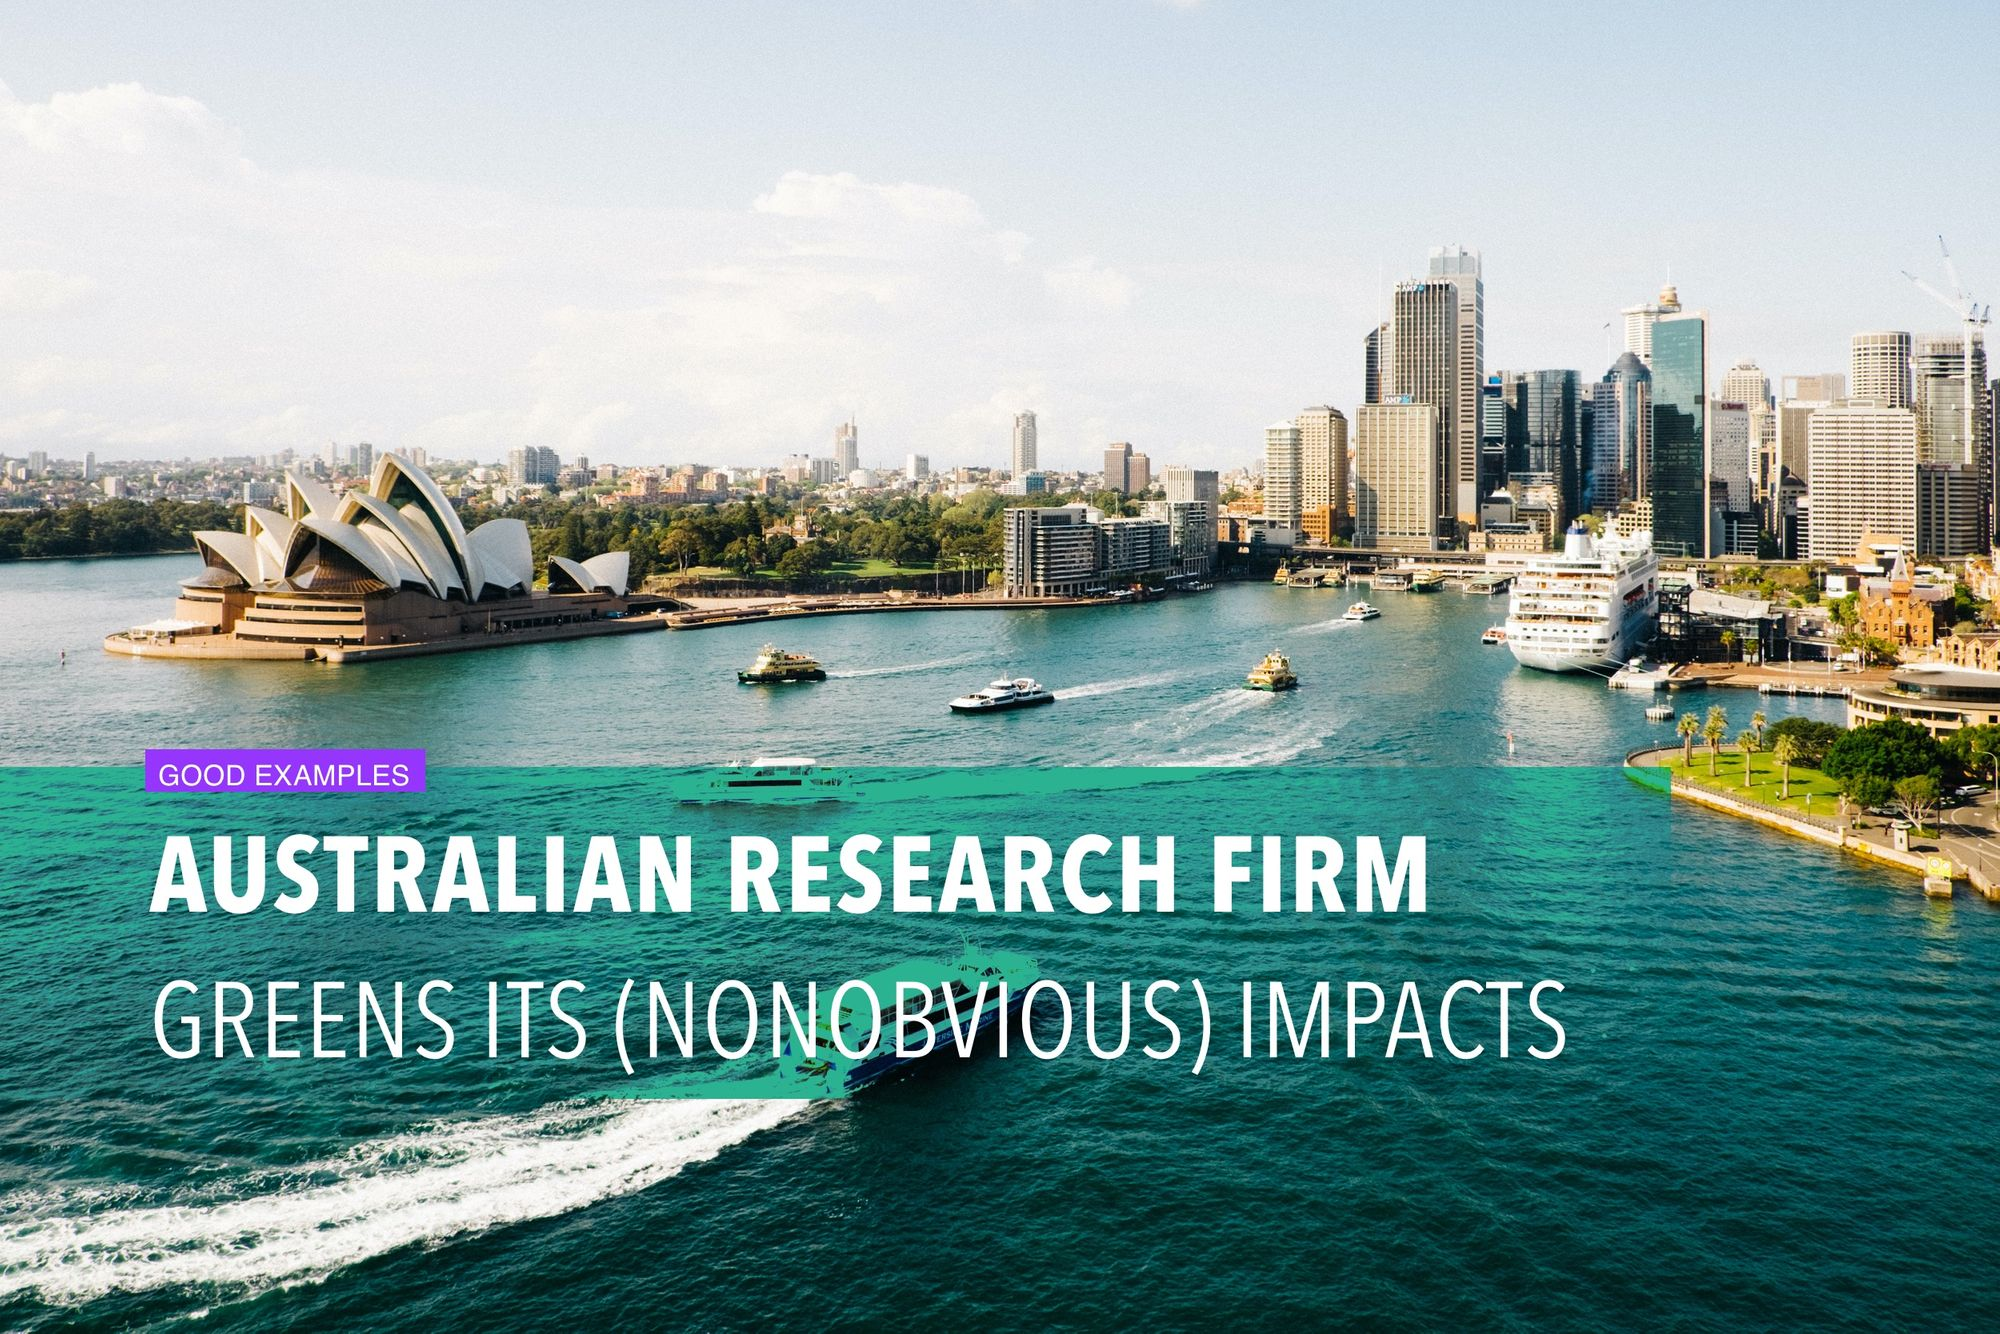 Australian research firm greens its (nonobvious) impacts